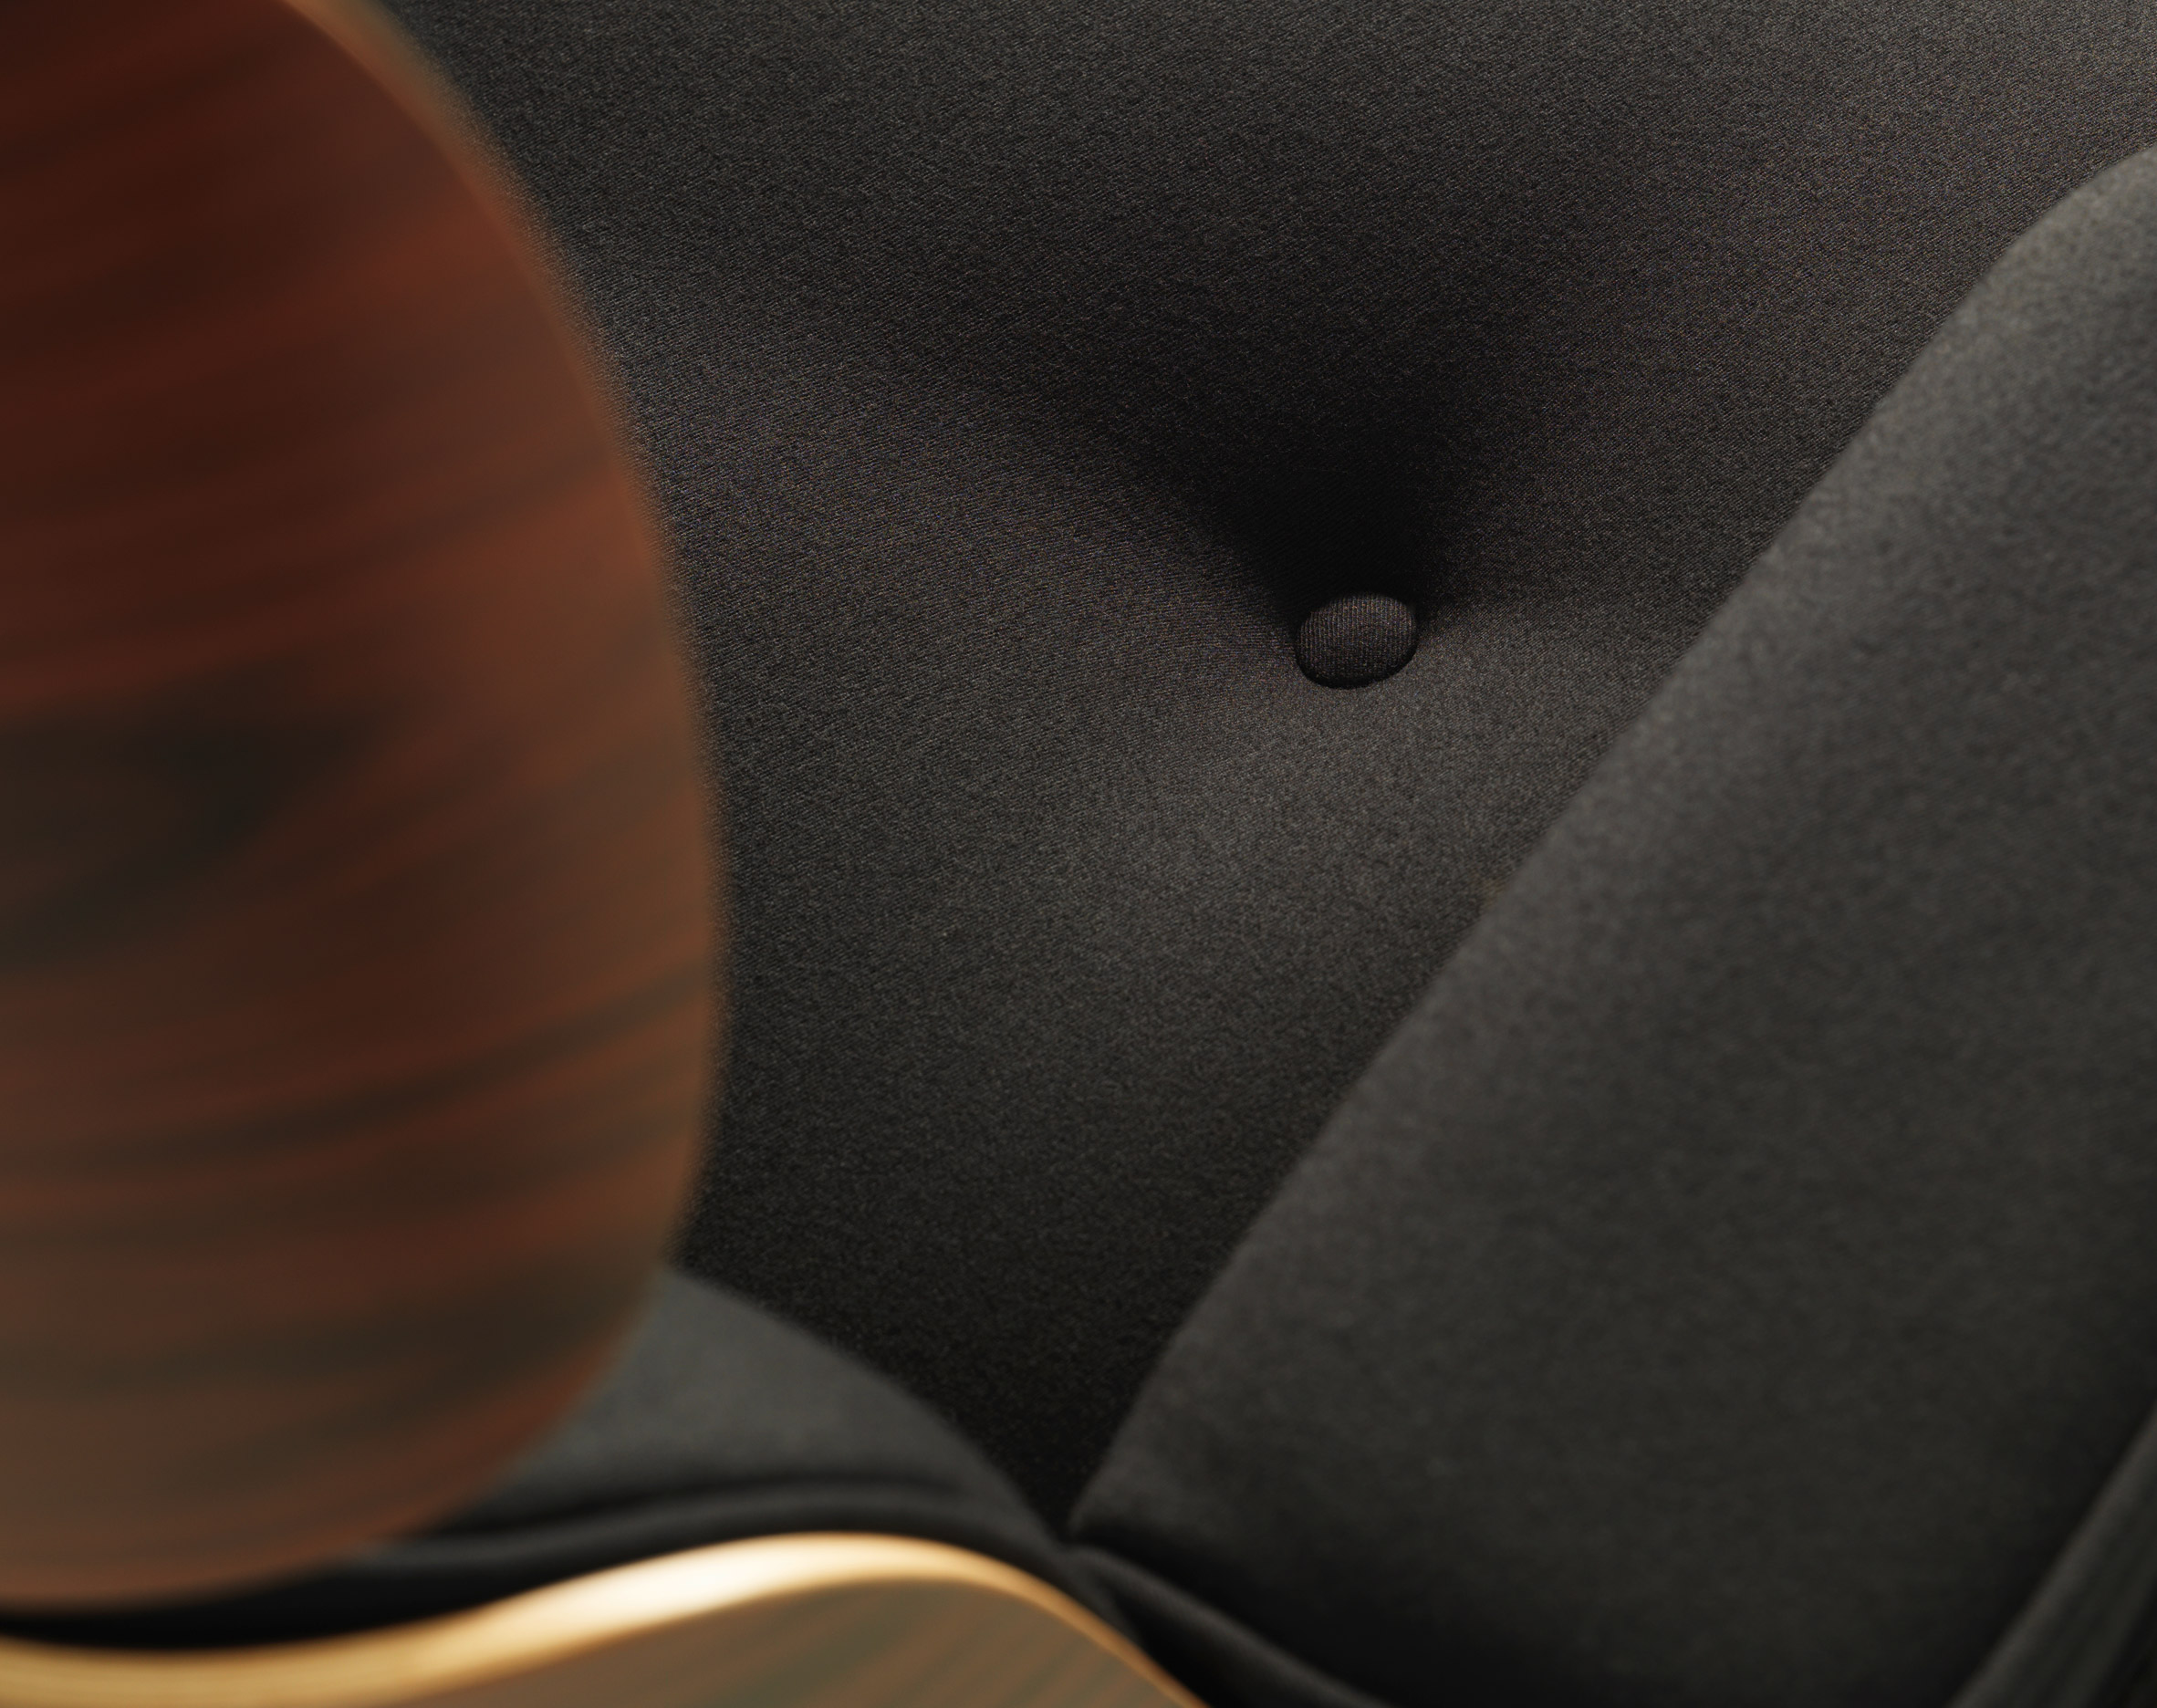 charles-ray-eames-lounge-chair-60th-anniversary-furniture-design-news-trill-upholstery-vitra_dezeen_2364_col_1